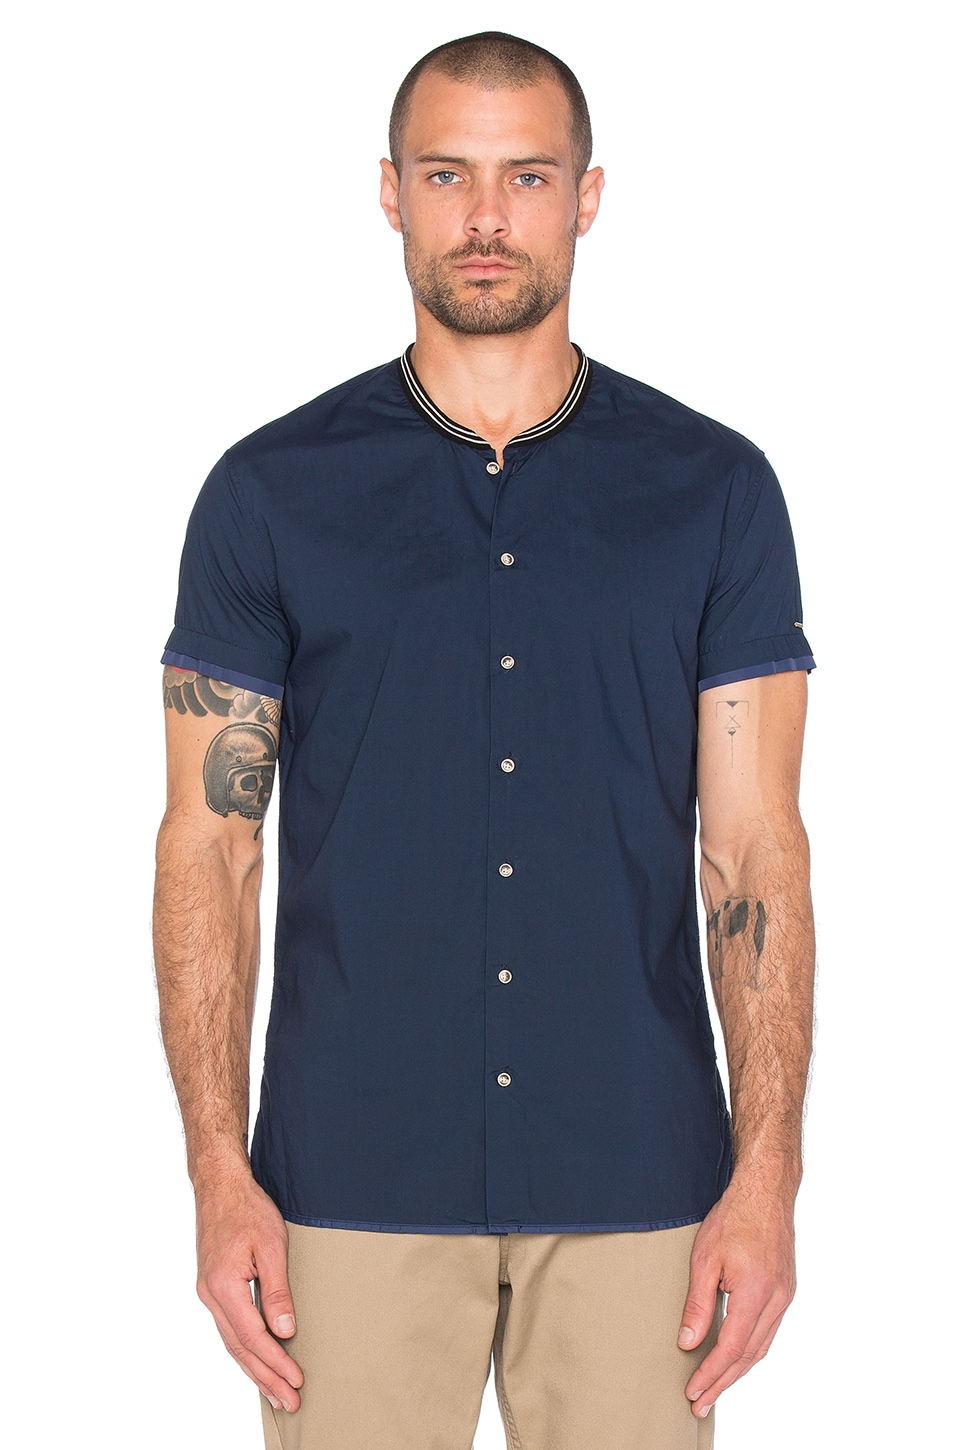 Crispy Shortsleeve Shirt